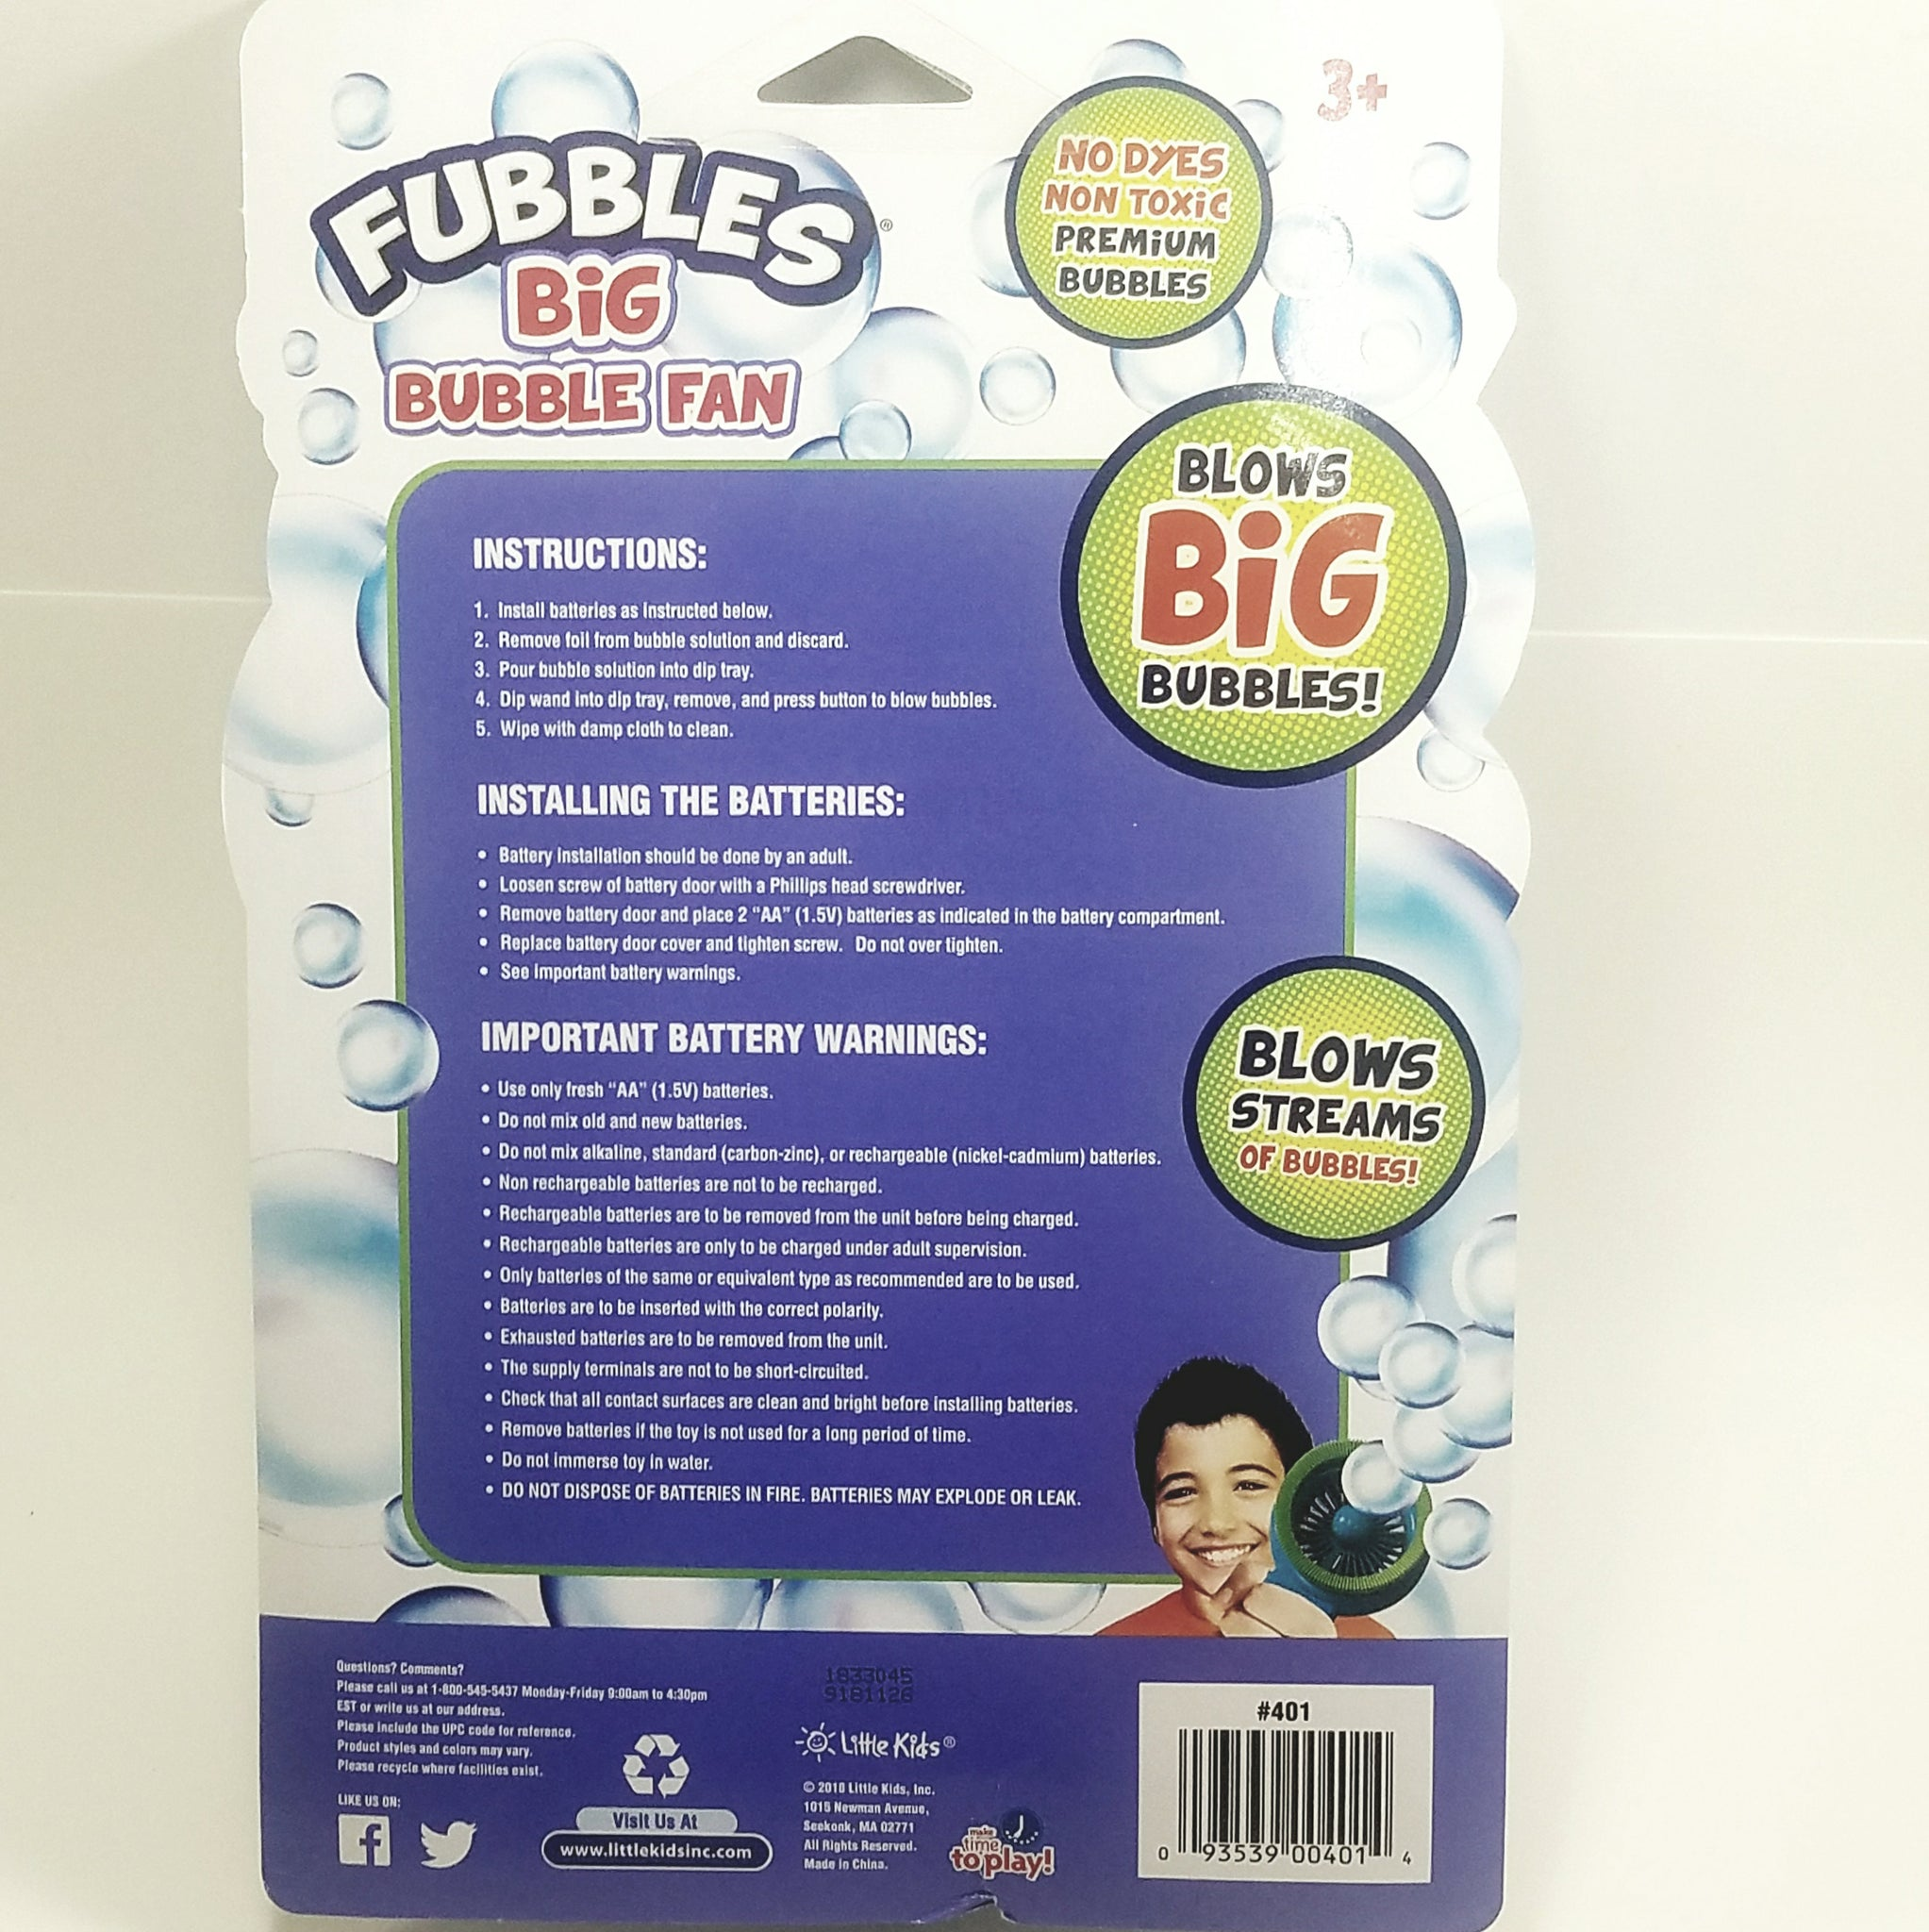 Fubbles® Big Bubble Fan